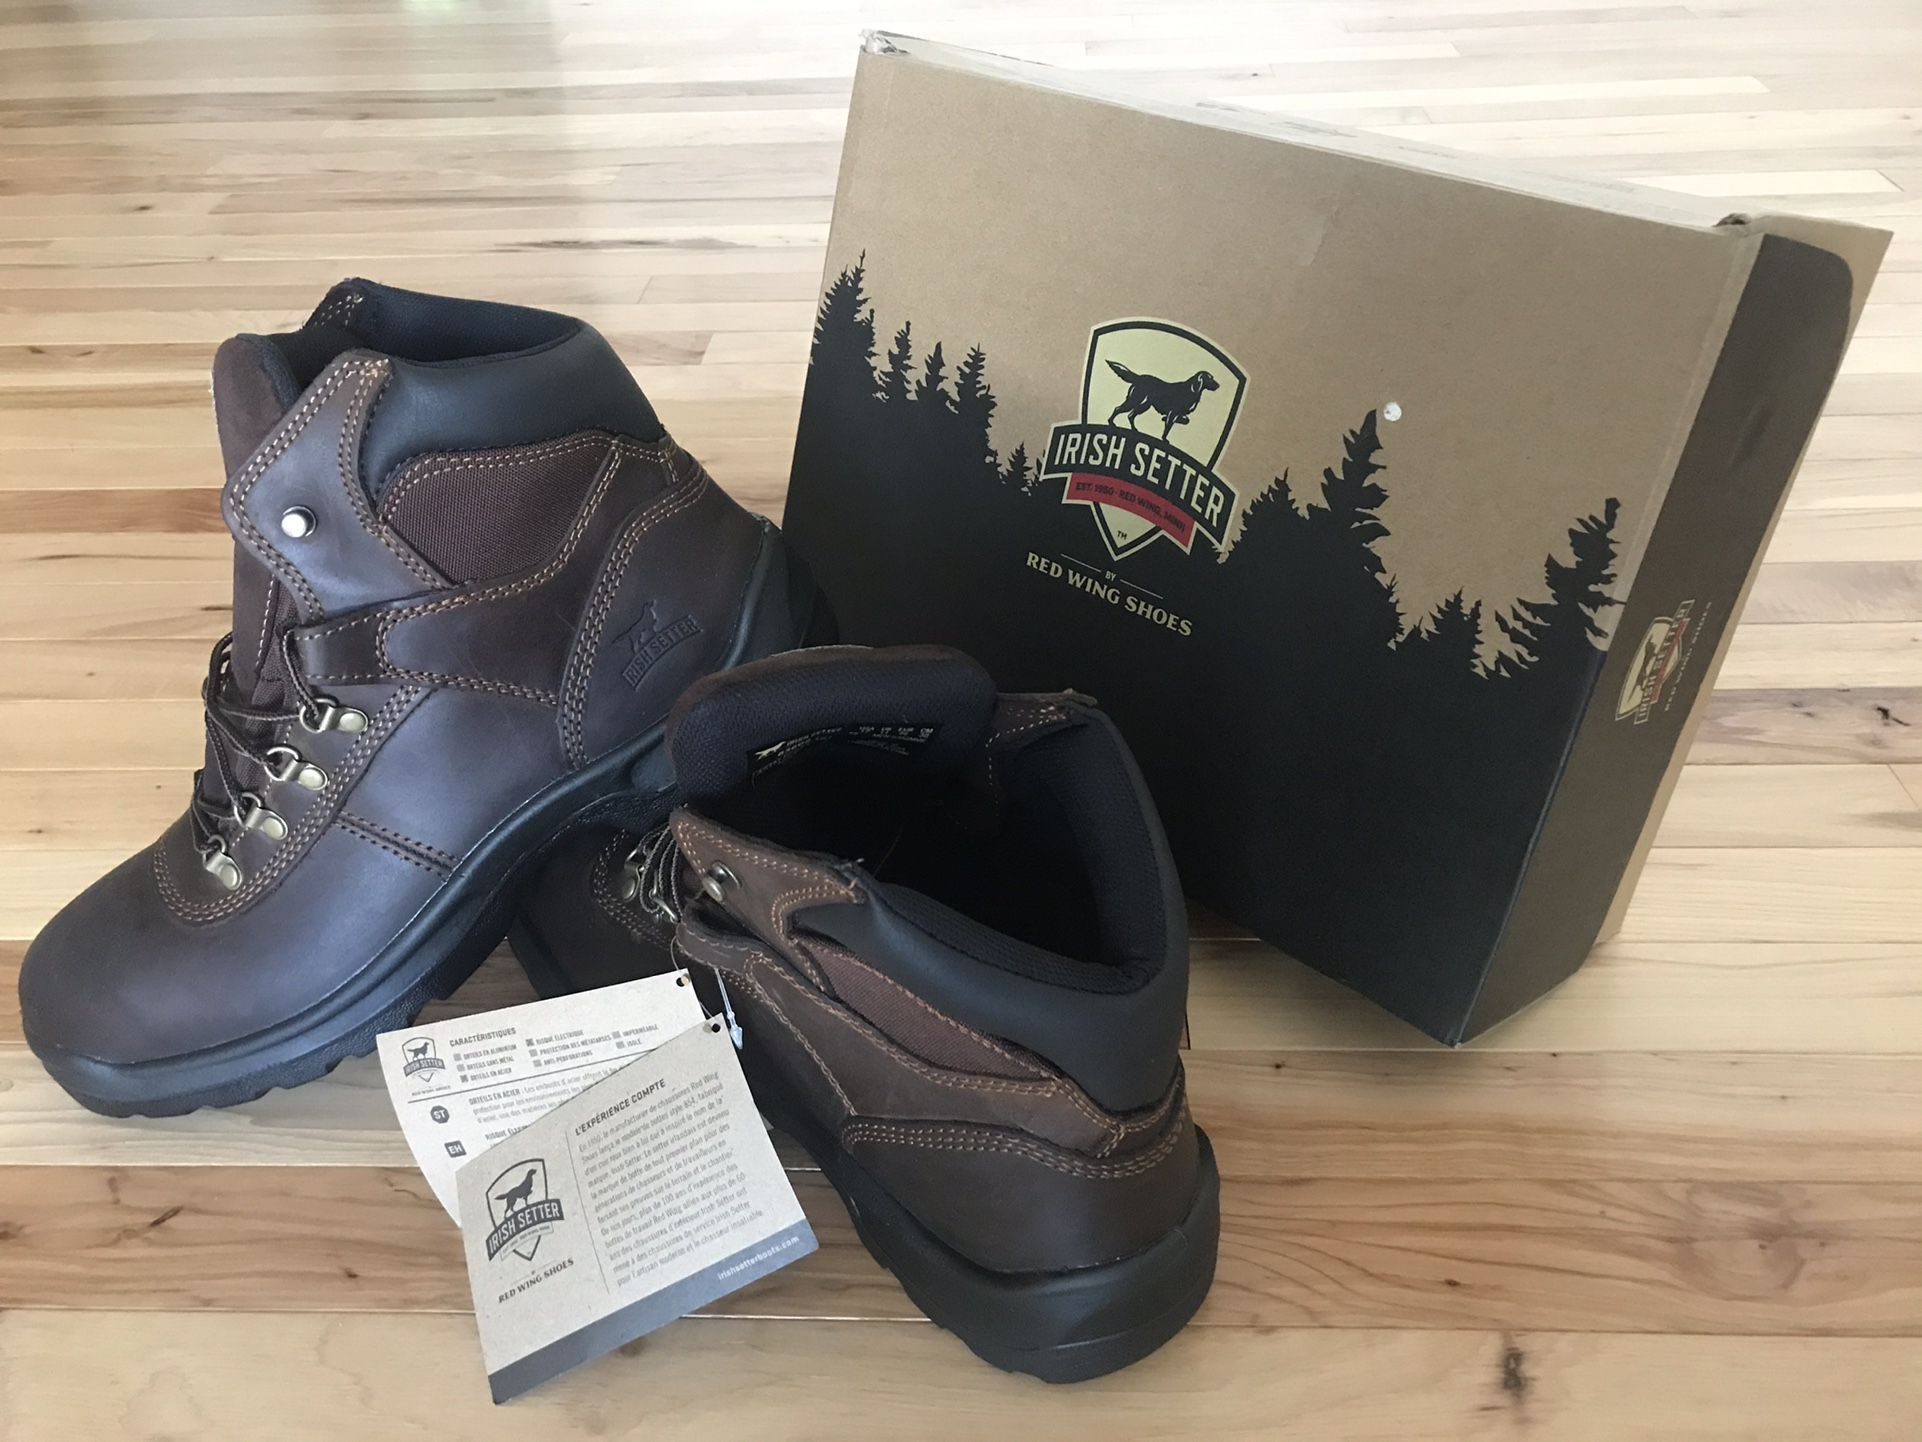 Red Wing Boots(Leather), Irish Setter . Steel Toe Safety Boots !! Size 12 , Brand New in Box !!!!